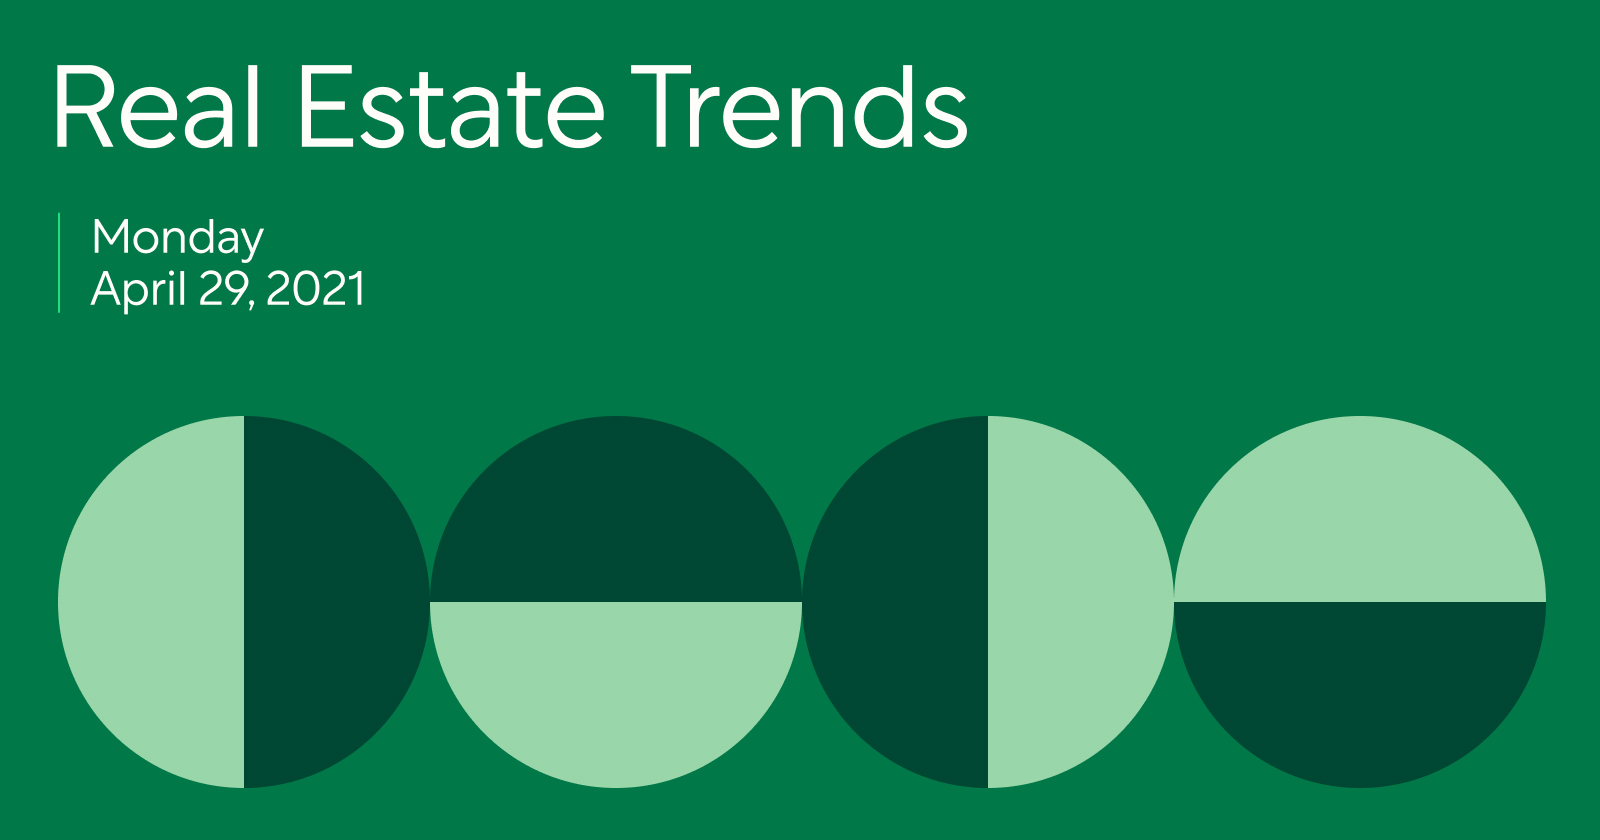 Real Estate Trends 4/29/2021: Working with First-time Buyers in a Seller's Market